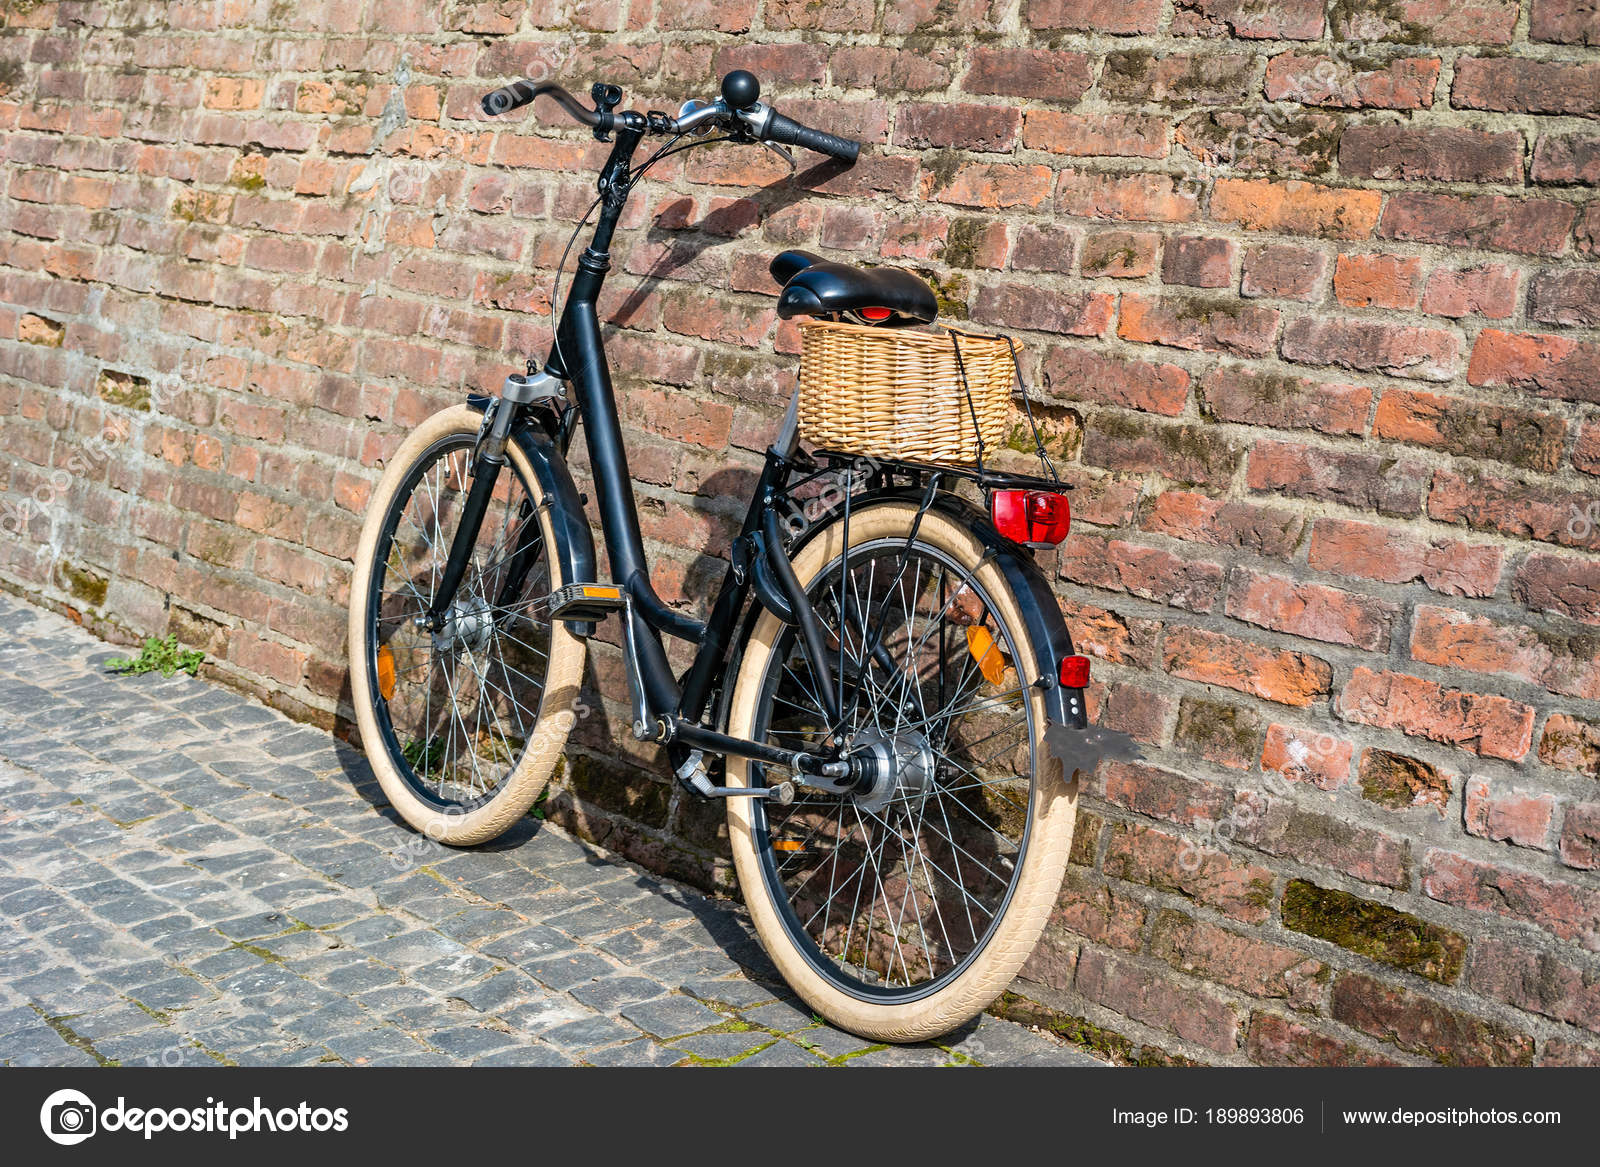 ea30e2155f3 Black retro vintage bicycle with old brick wall and copy space. Retro  bicycle with basket in front of the old brick wall. Retro bicycle on  roadside with ...